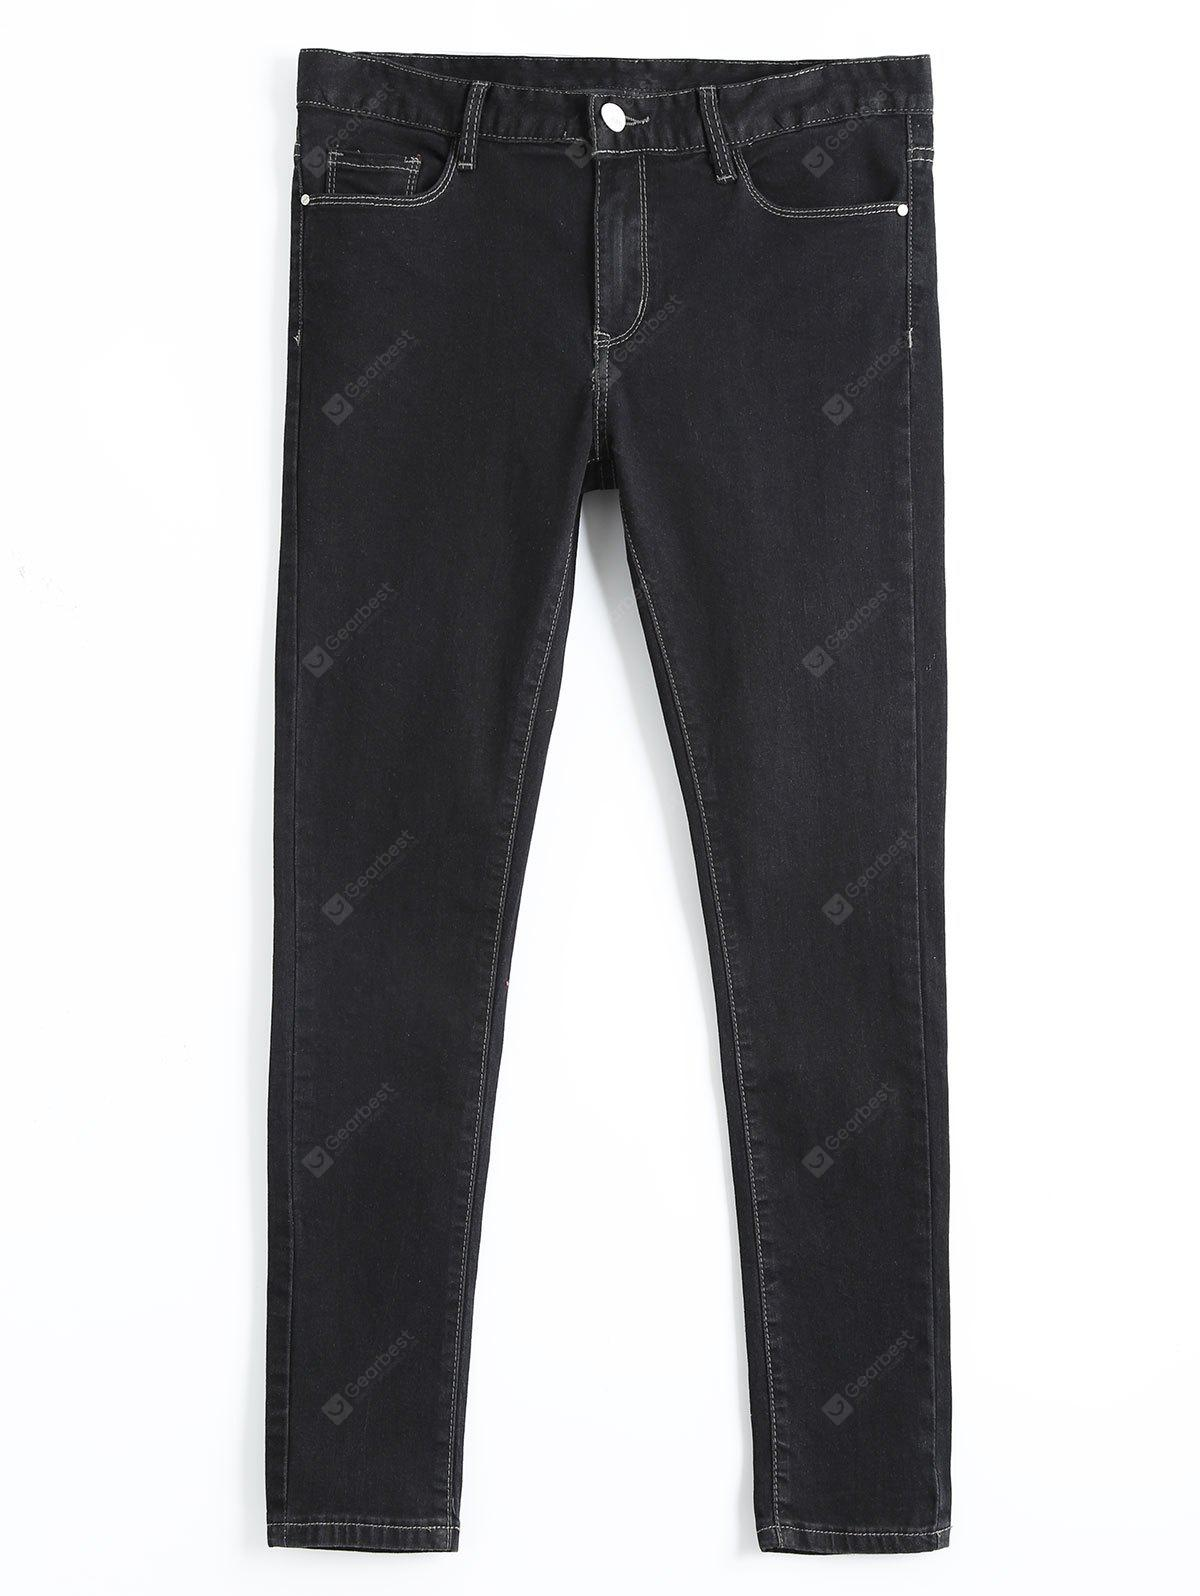 BLACK 28 High Waisted Skinny Pencil Jeans